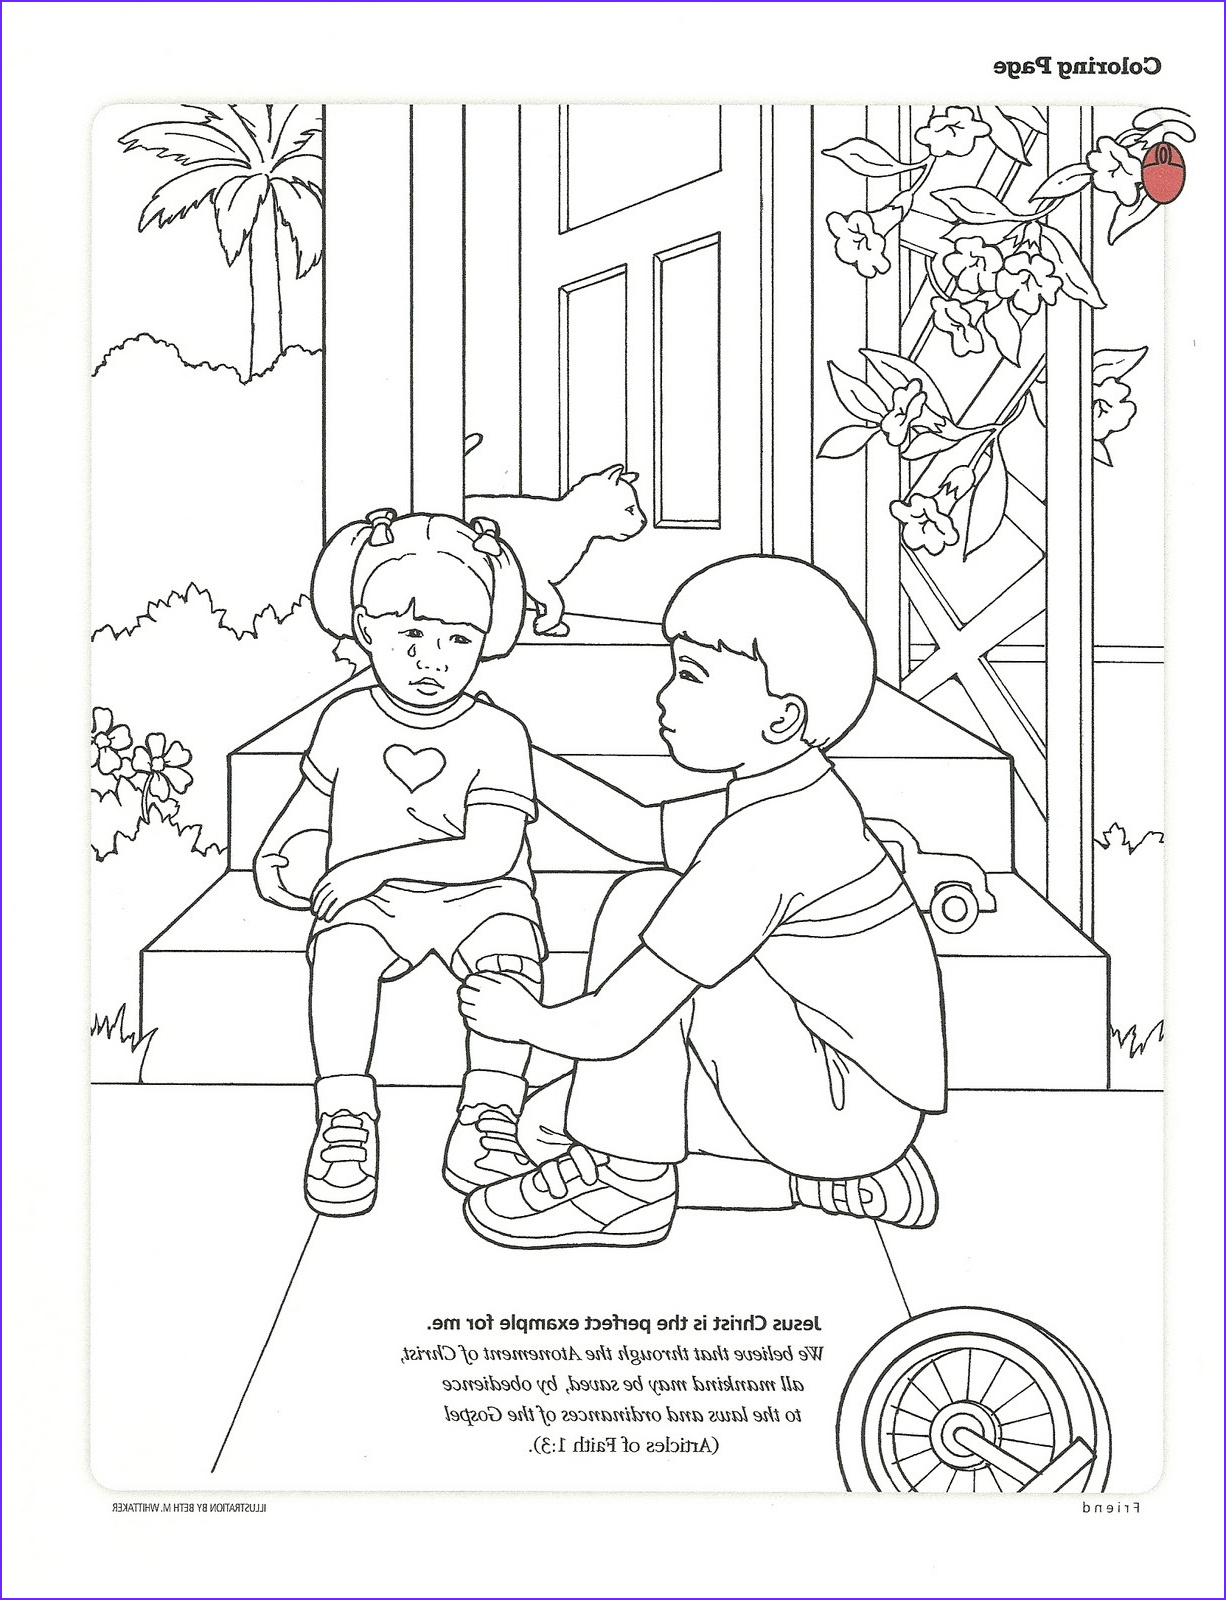 Forgiveness Coloring Sheet Elegant Photos Happy Clean Living Primary 3 Lesson 23